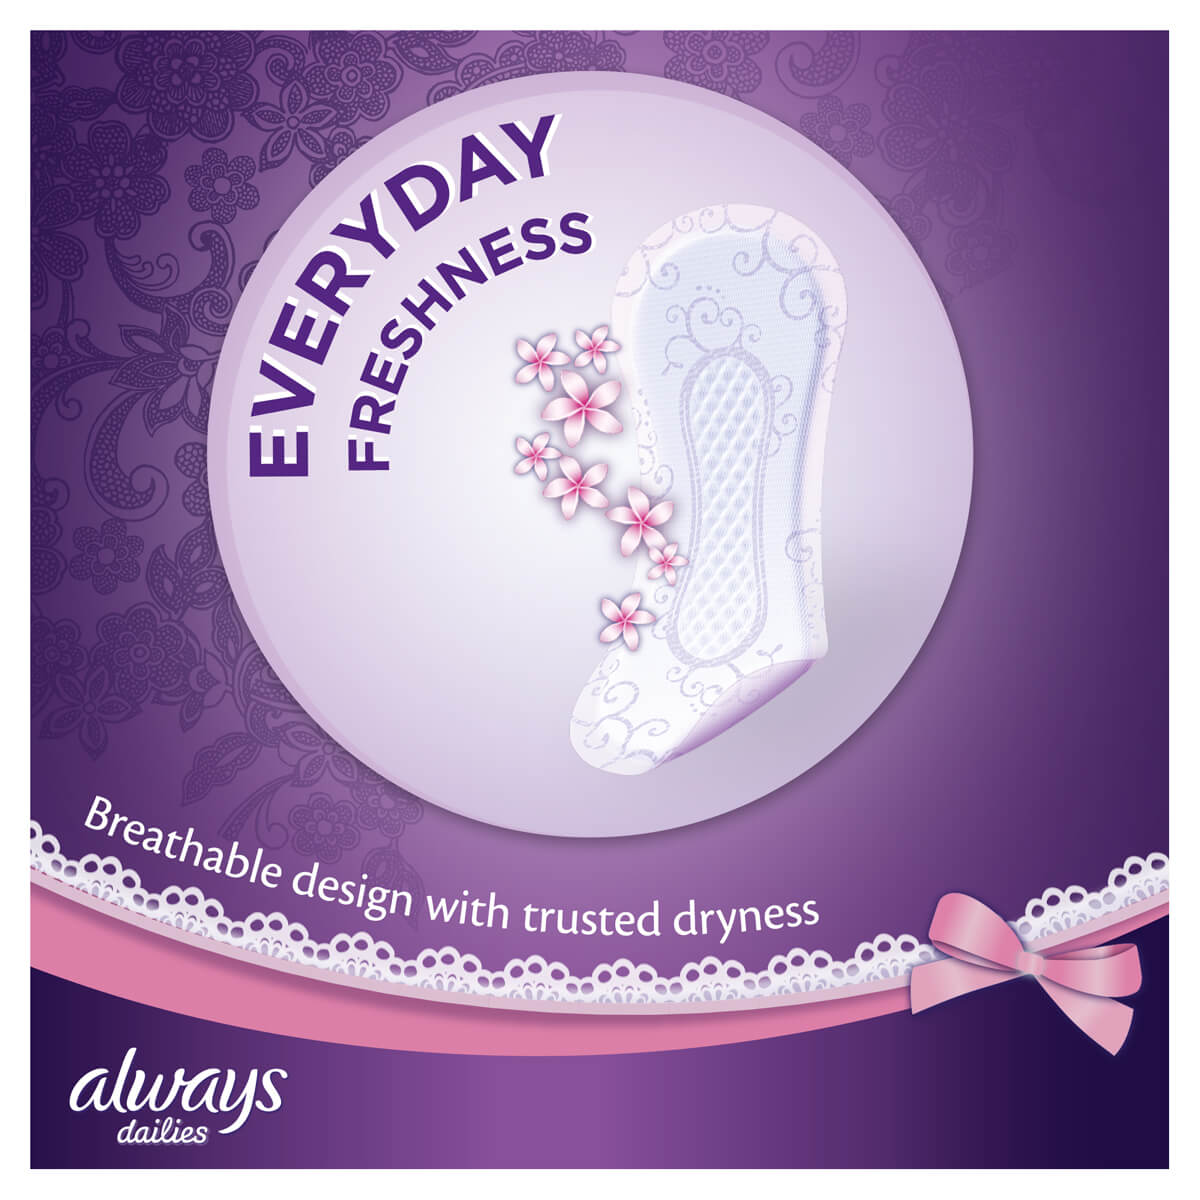 ALWAYS DAILIES Singles To Go Normal Pantyliners Everyday Freshness